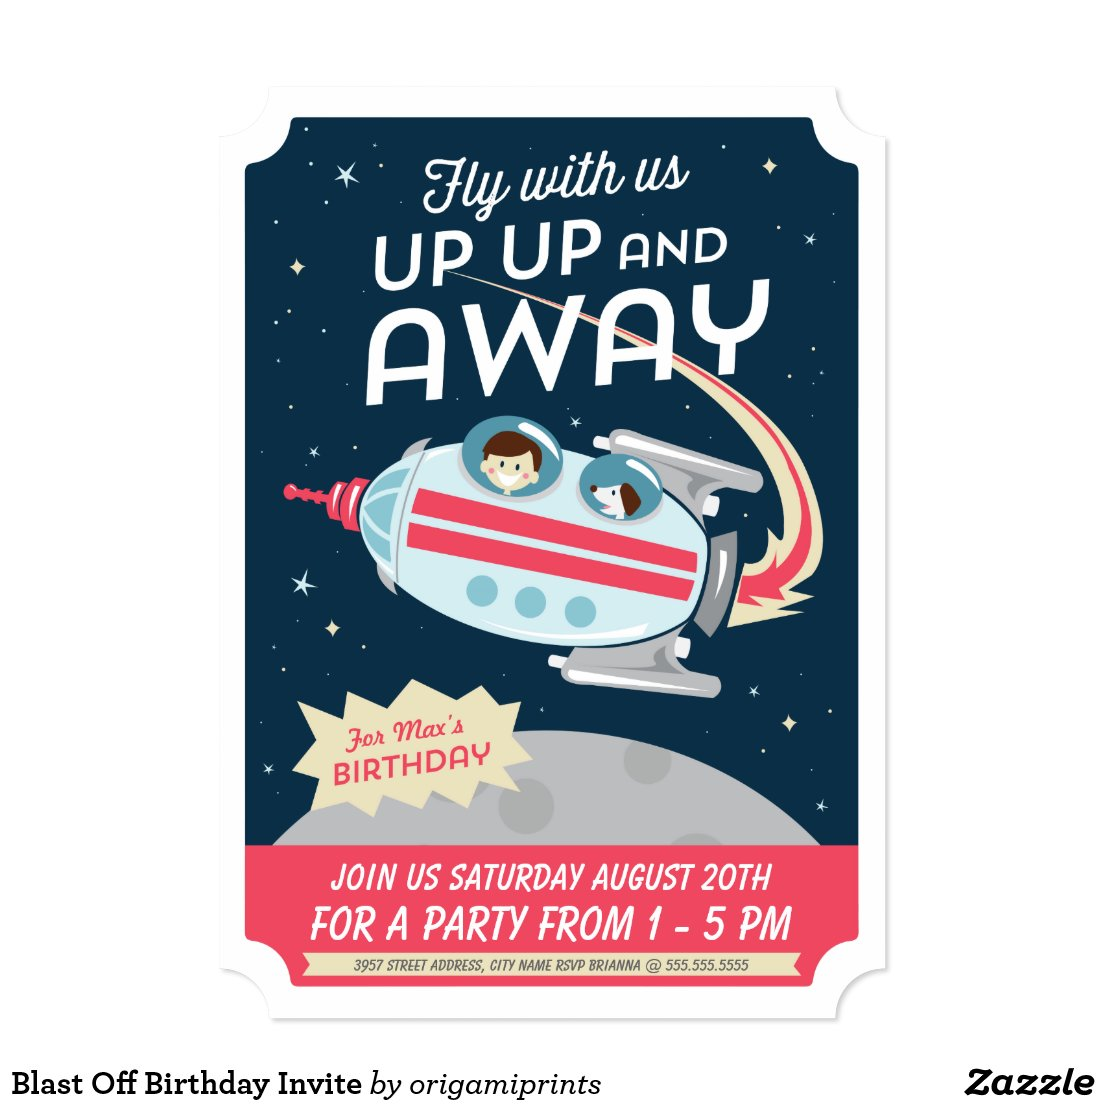 Blast Off Birthday Invite